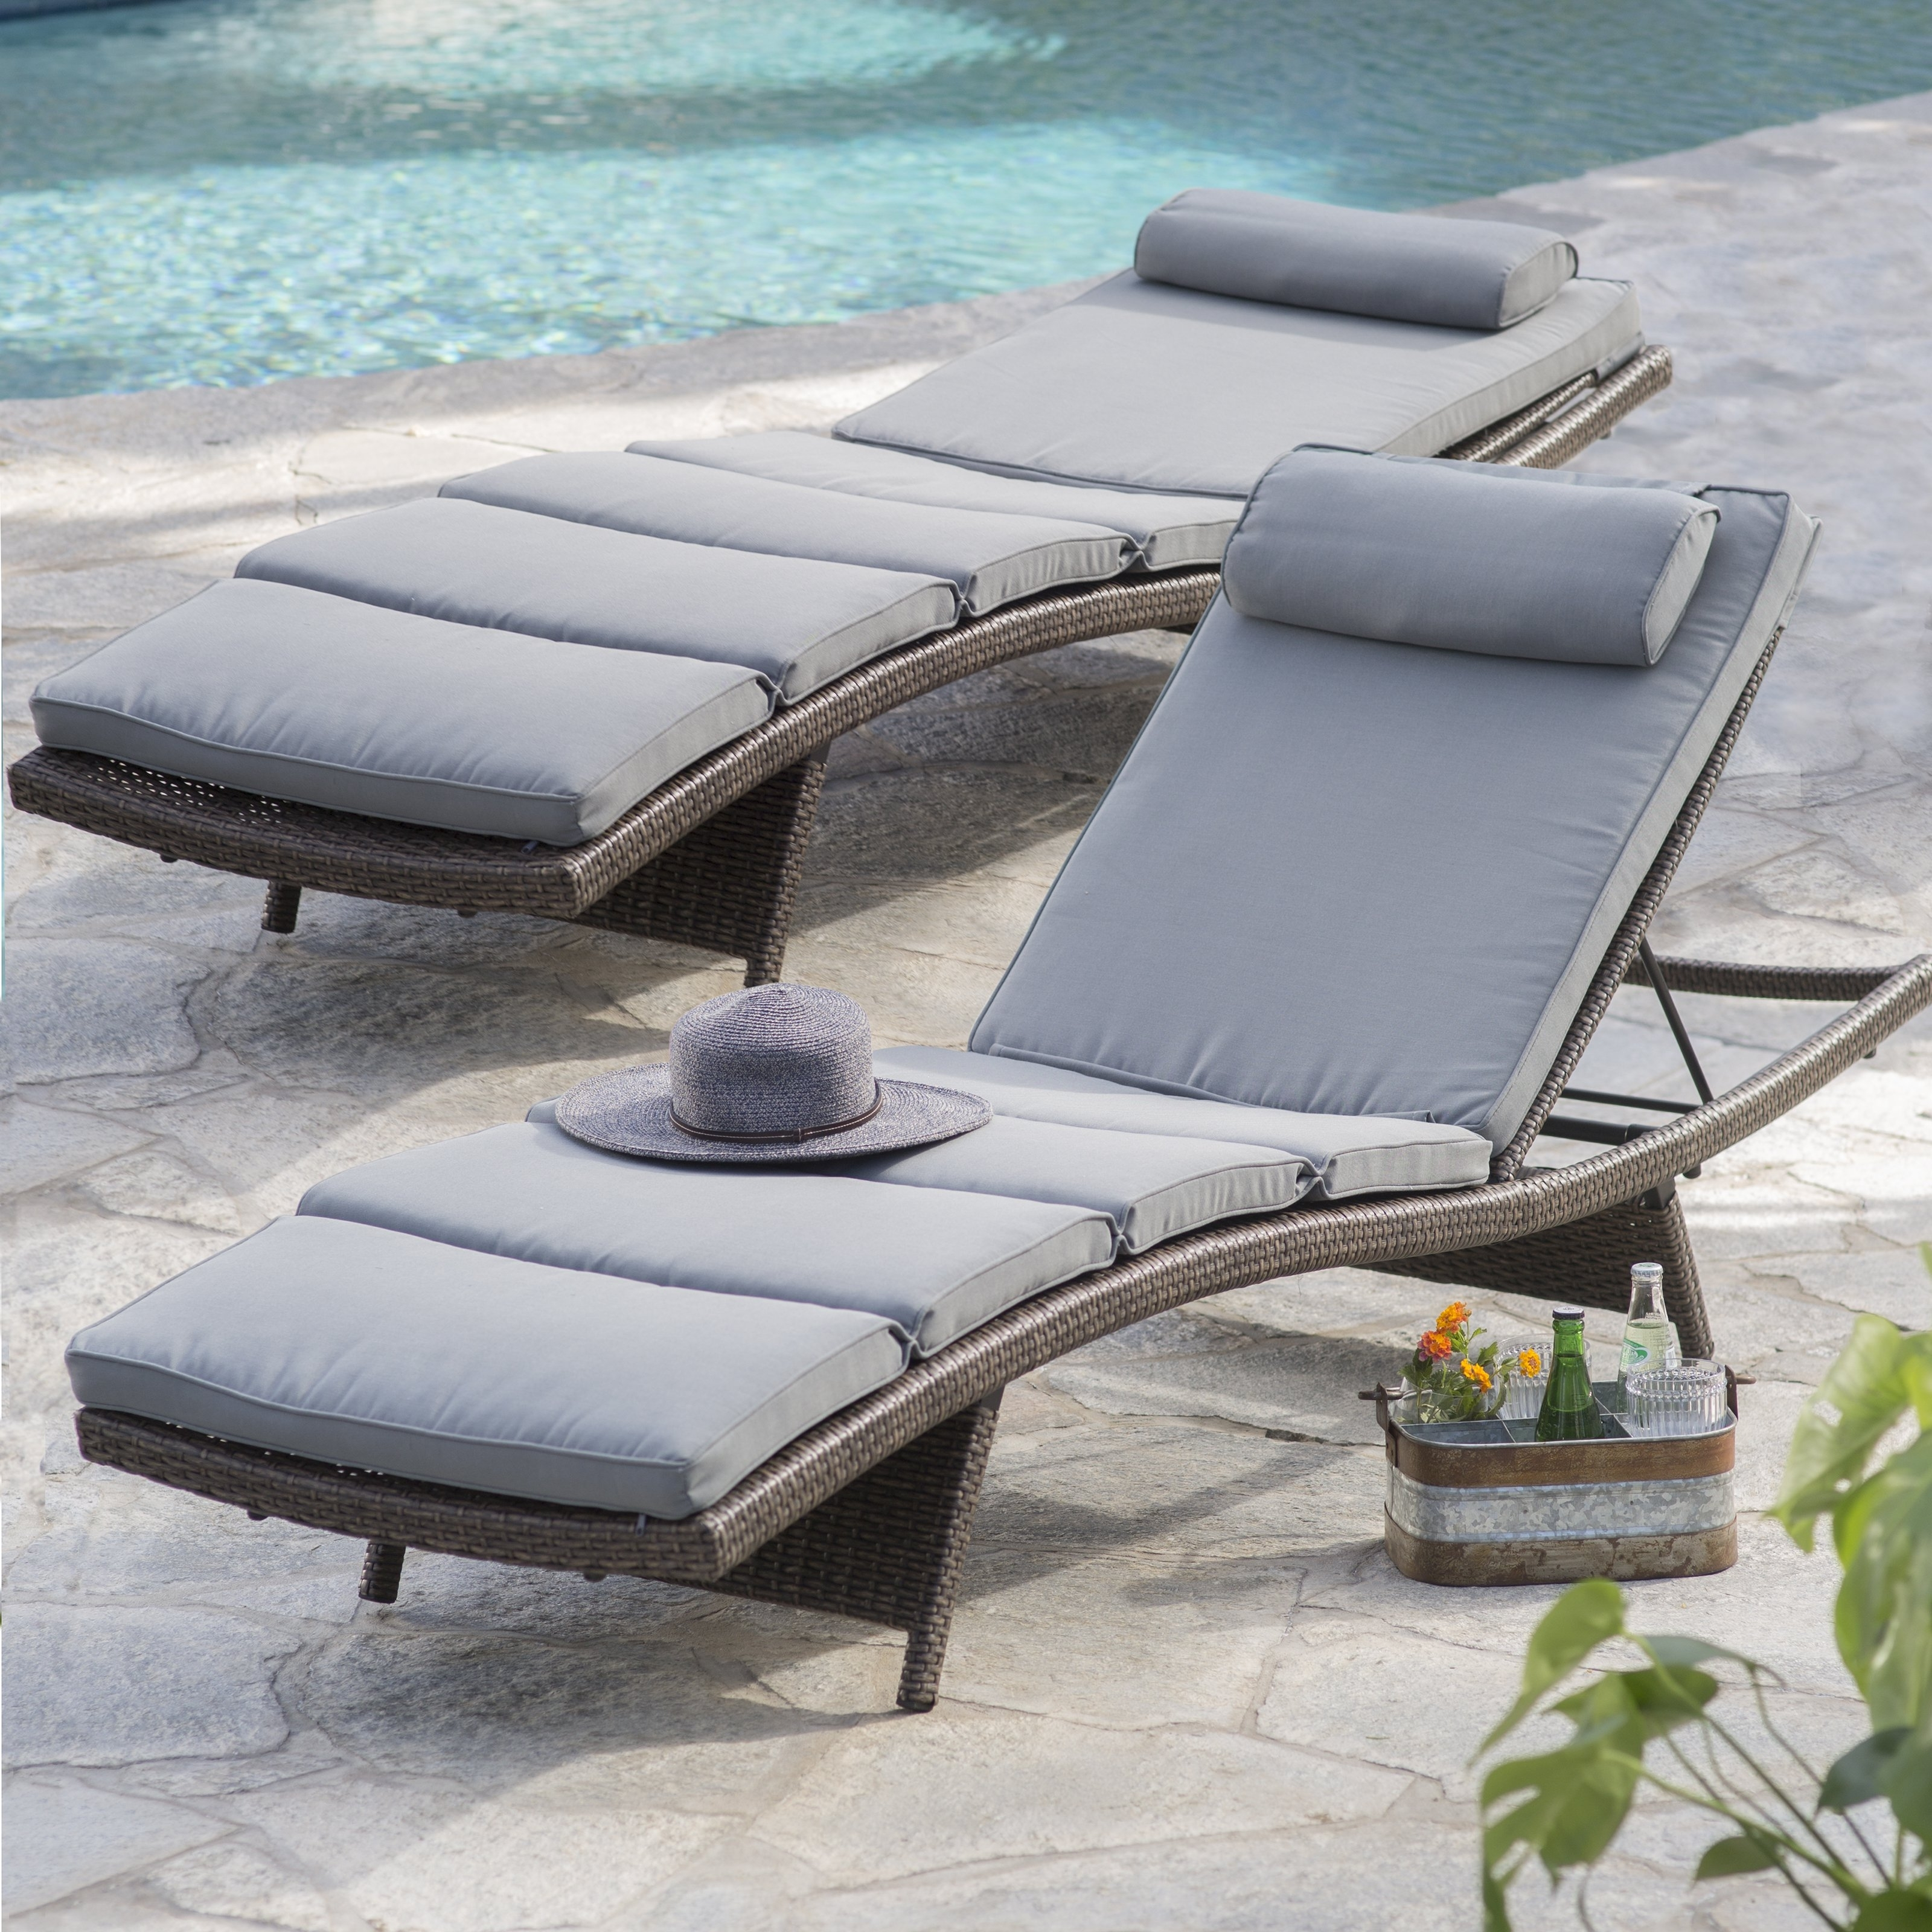 Belham Living Batiki Sun Bed Double Chaise Lounge With Cushion Regarding Most Popular Patio Chaise Lounges (View 4 of 15)